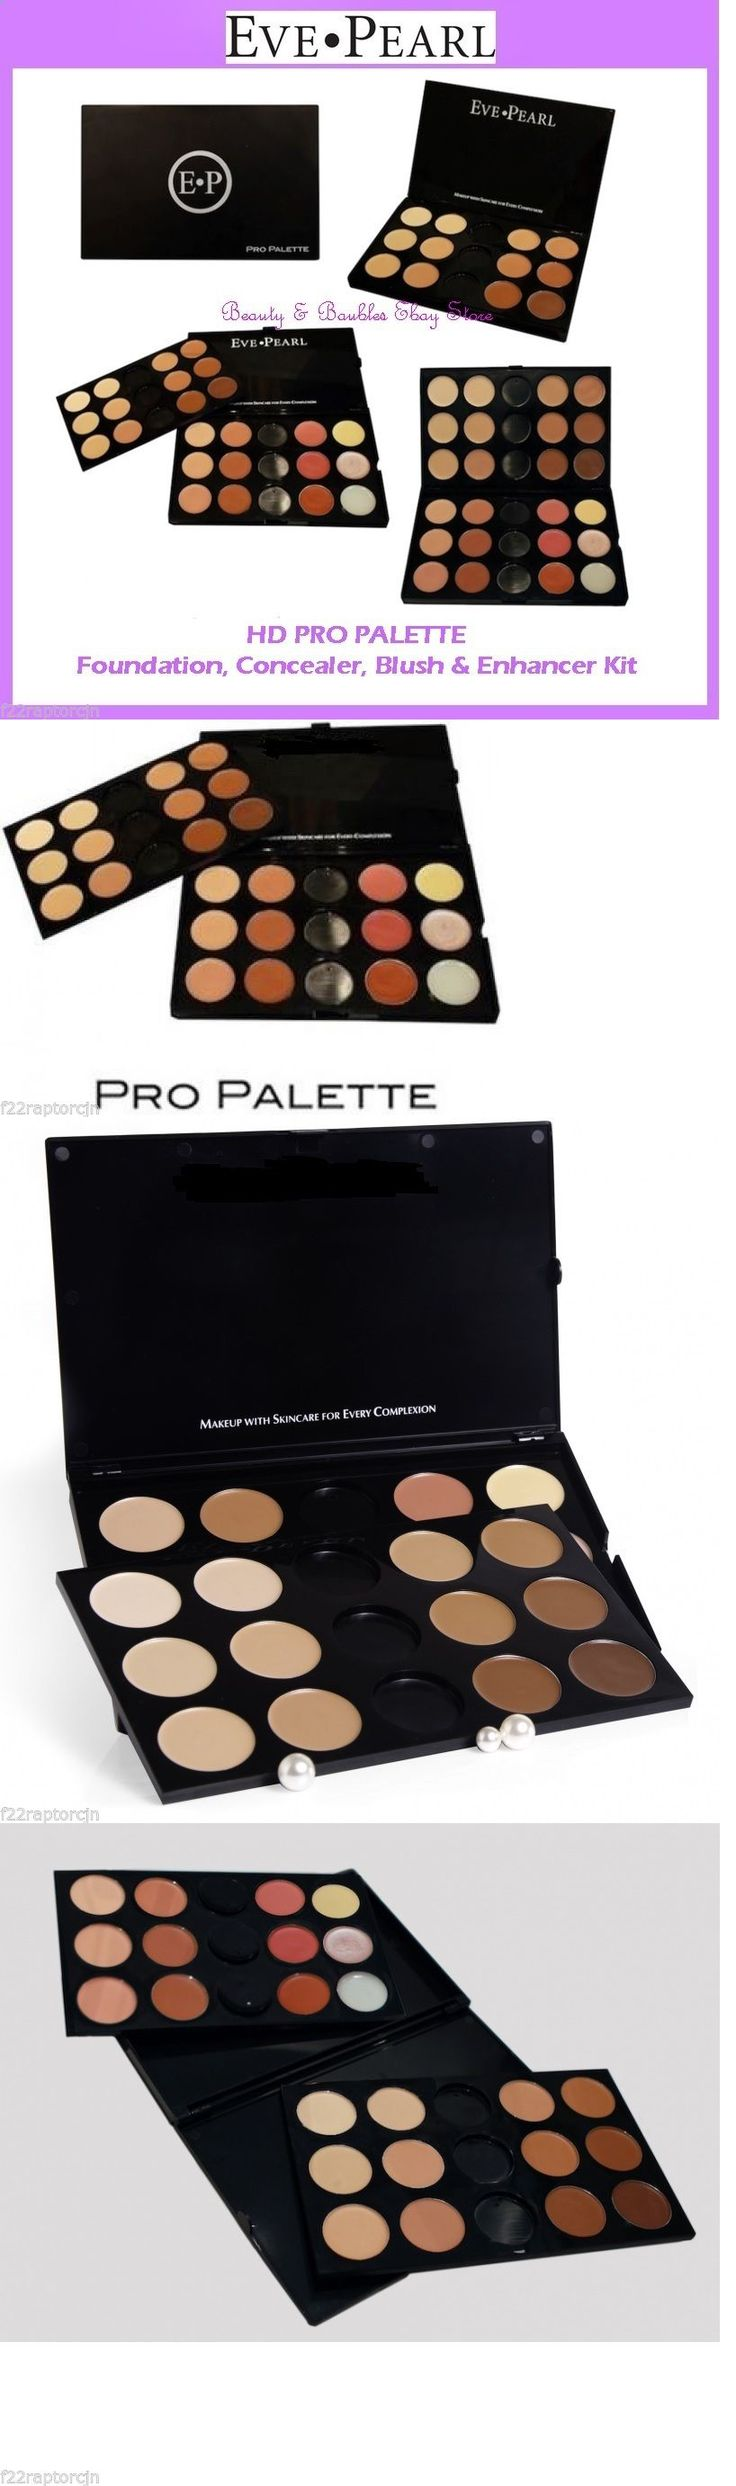 Makeup Sets and Kits: New Eve Pearl Hd Pro Palette-Foundation Salmon Concealer Blush Kit Free Shipping -> BUY IT NOW ONLY: $154.95 on eBay!